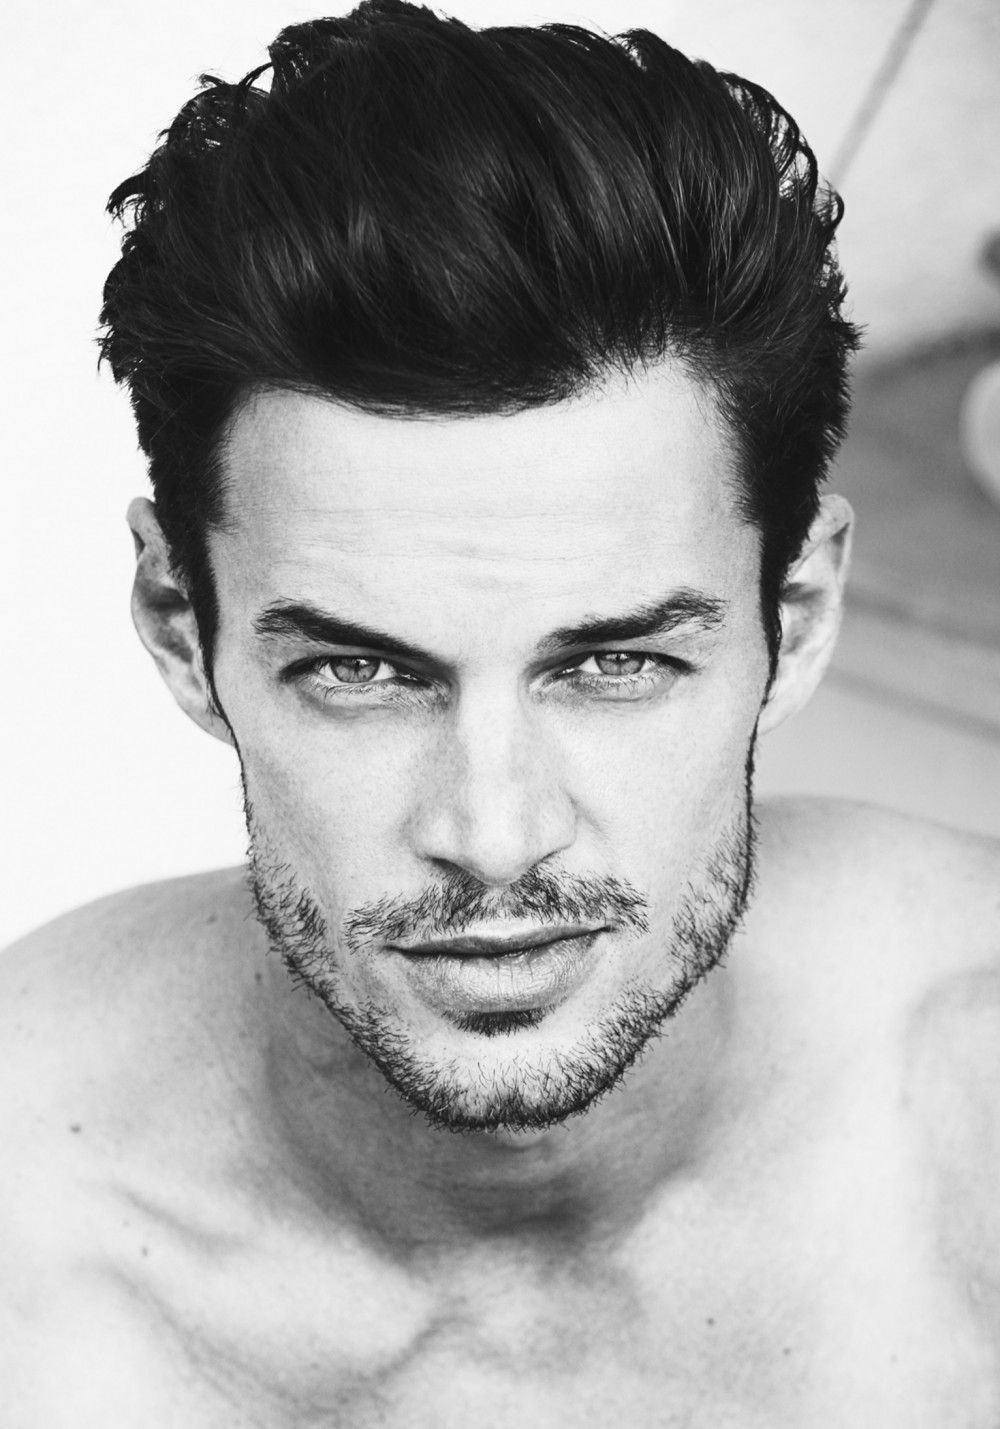 Long Black Hair Male Models With Grey Eyes Google Search